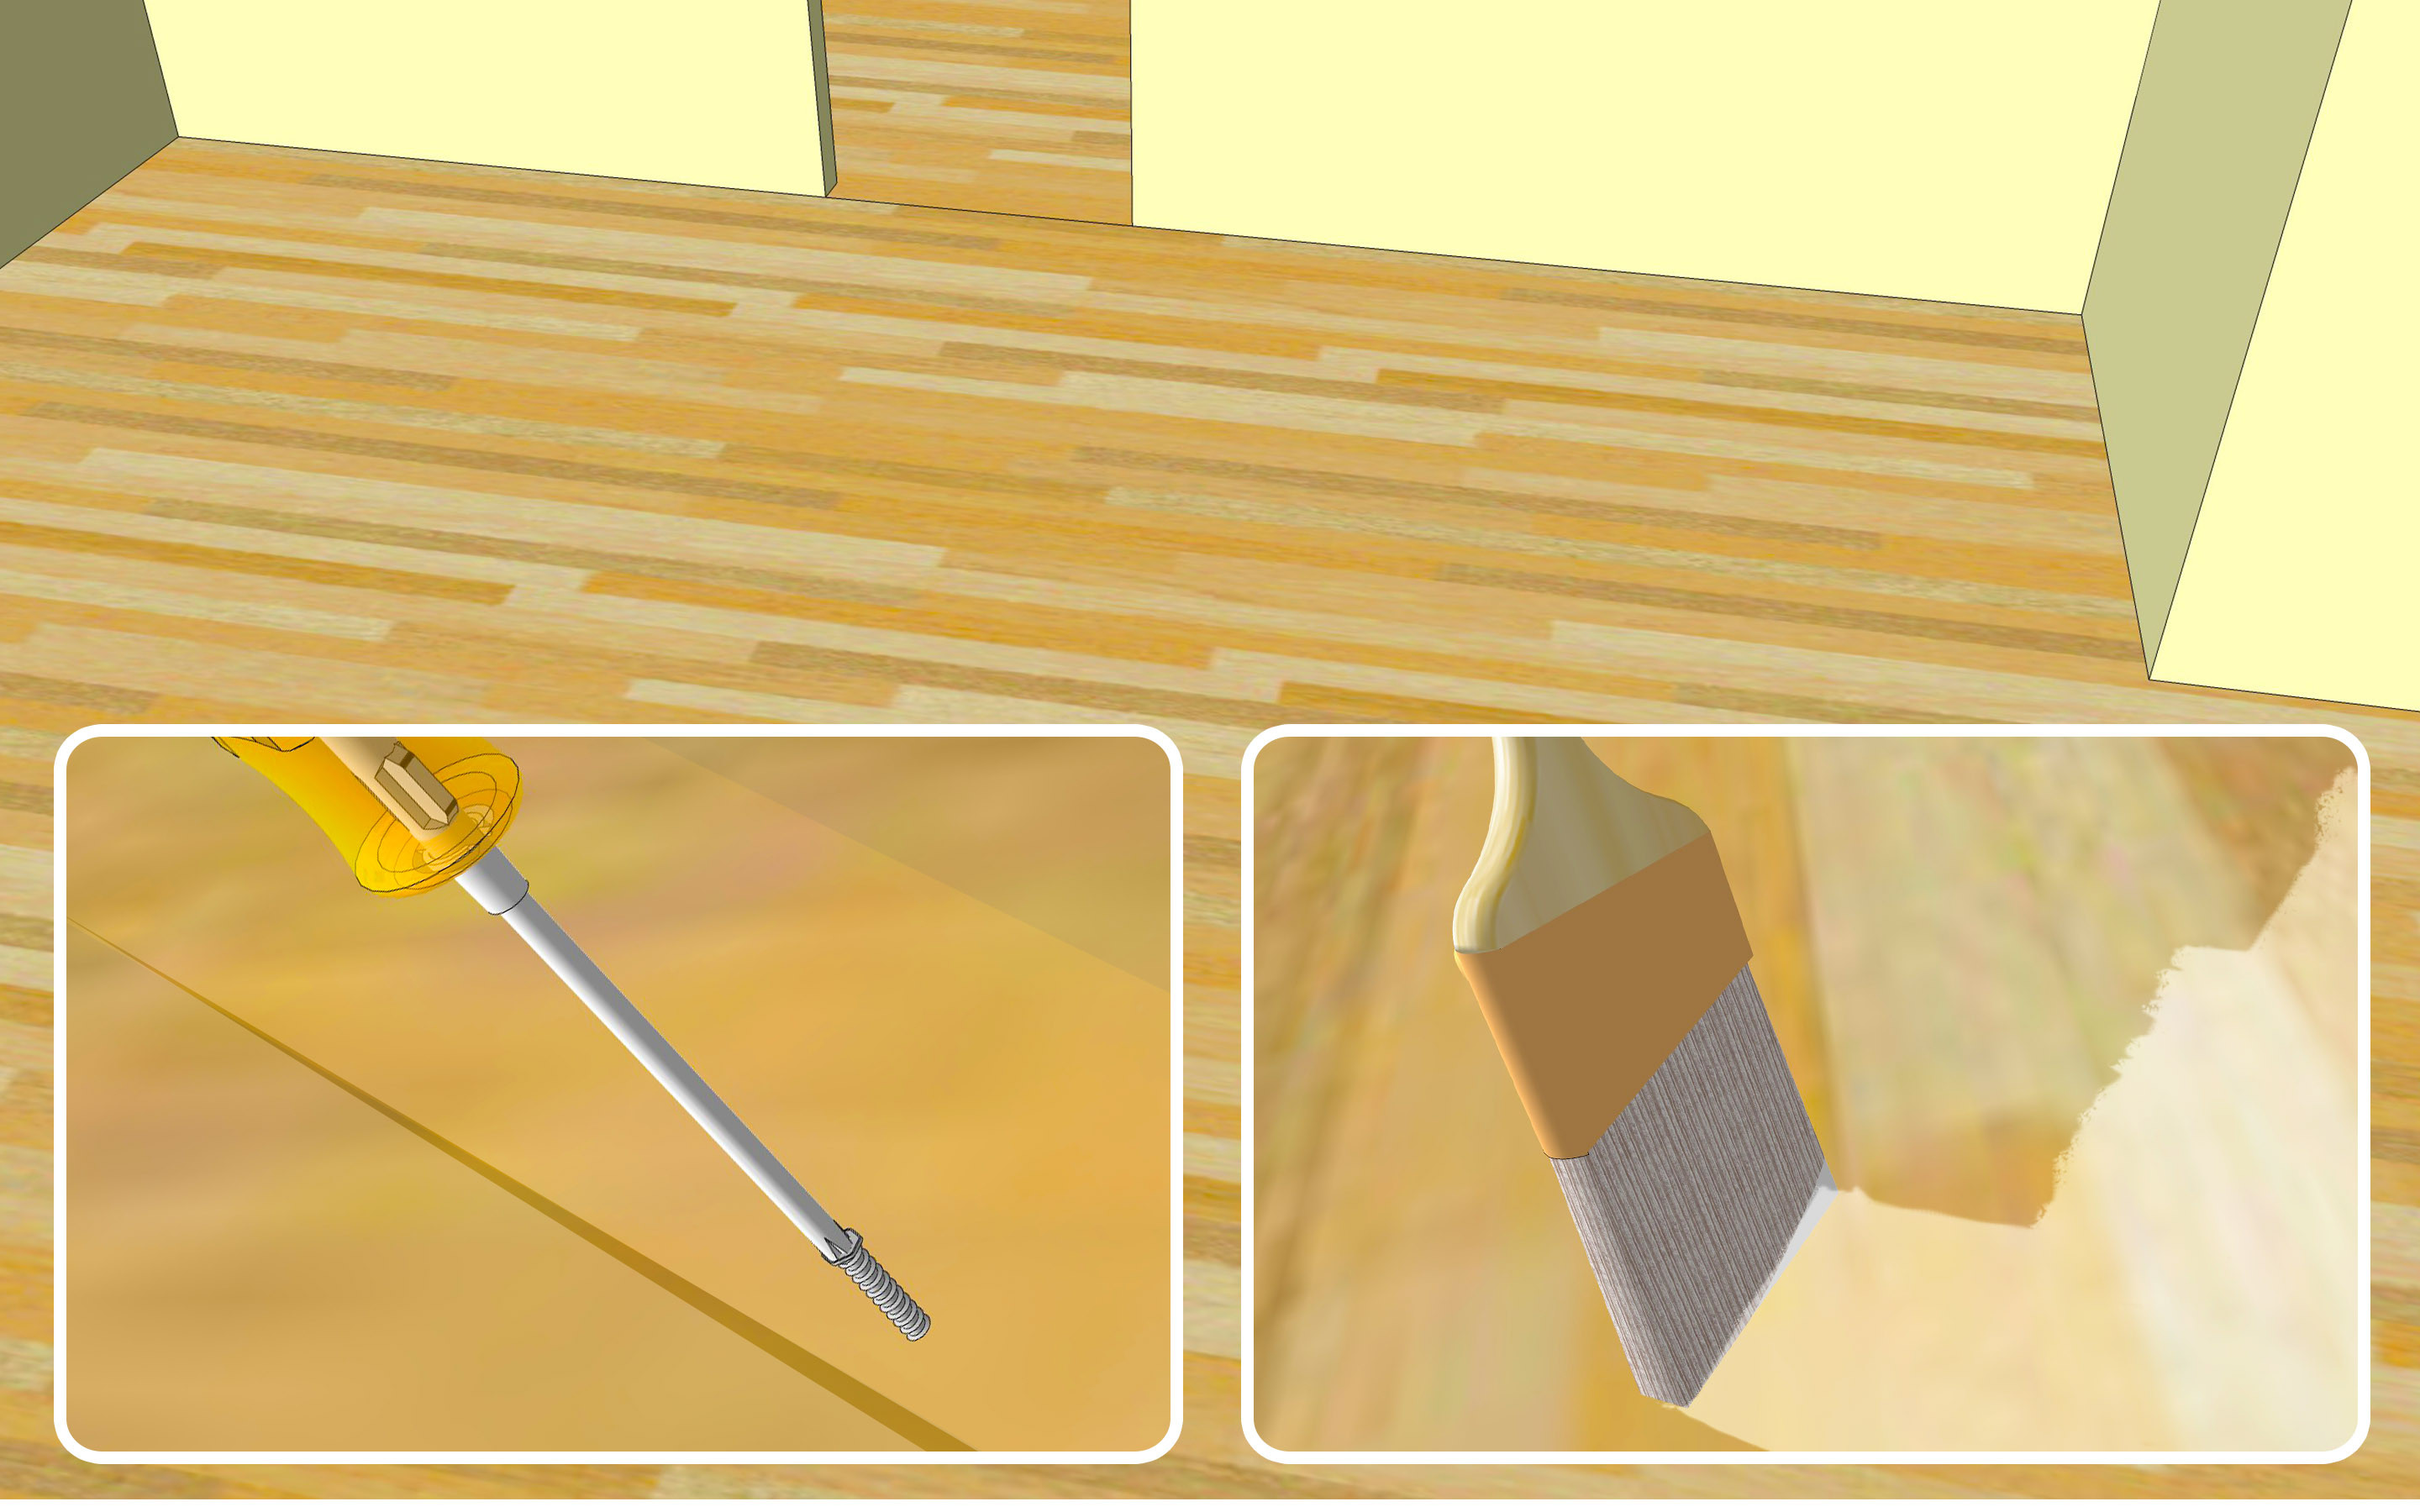 cost to install hardwood floors on concrete of how to take out carpet 13 steps with pictures wikihow in take out carpet step 13 version 2